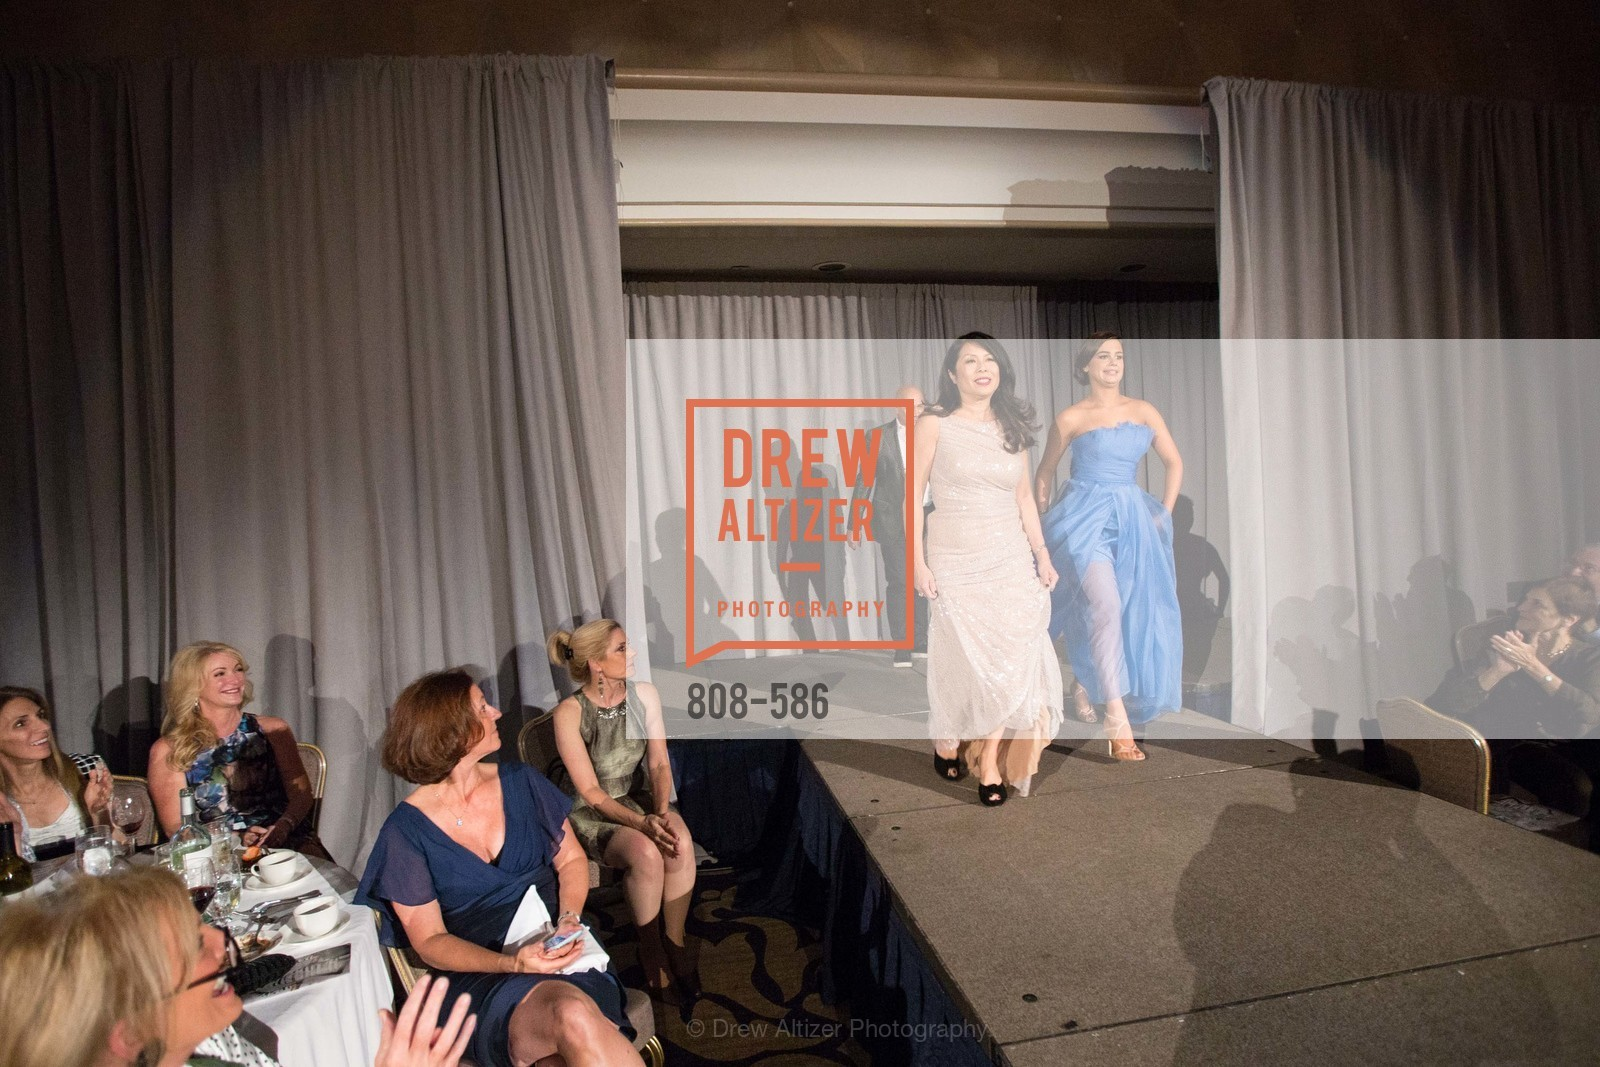 Brooke Christian, Carmen Marc Valvo, Sharon Seto, 2014 Bay Area ARTHRITIS AUXILLIARY Benefit & Fashion Show, US, October 2nd, 2014,Drew Altizer, Drew Altizer Photography, full-service event agency, private events, San Francisco photographer, photographer California